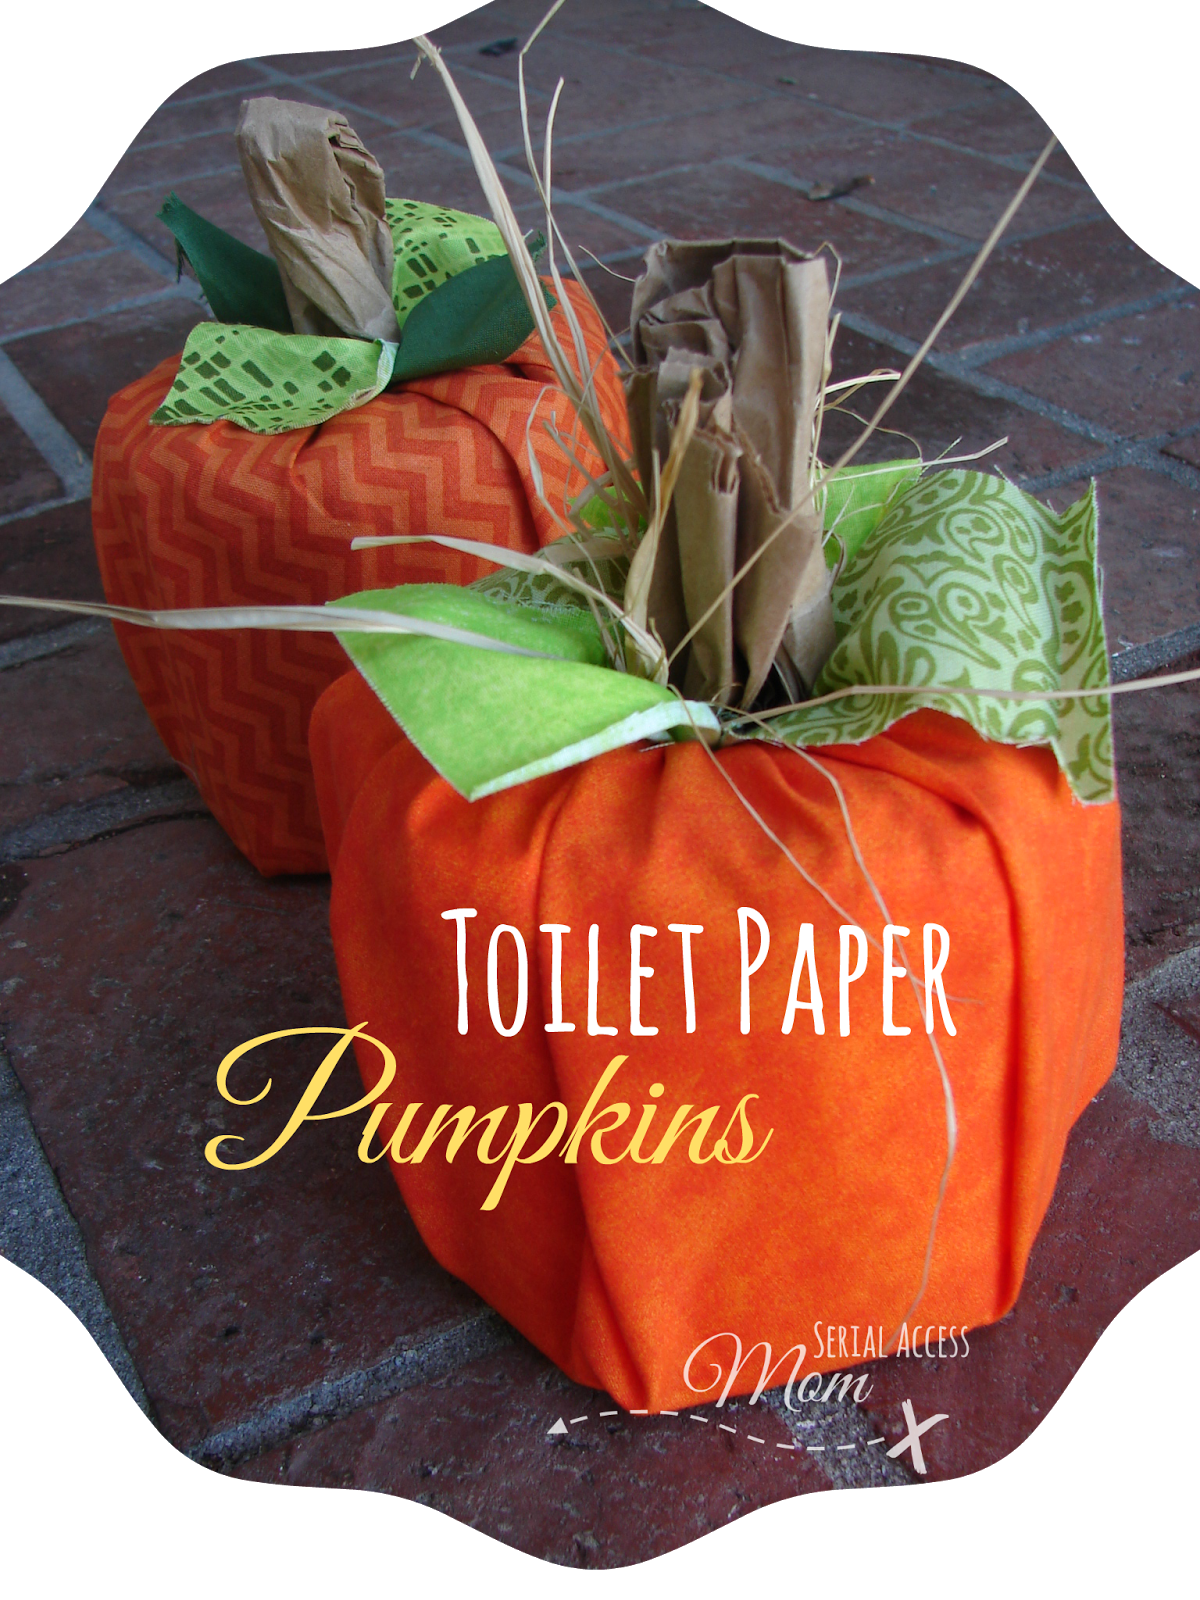 Autumn Crafts Toilet Paper Pumpkins Easy And Fun To Make Fall Crafts For Adults Easy Fall Crafts Crafts For Seniors